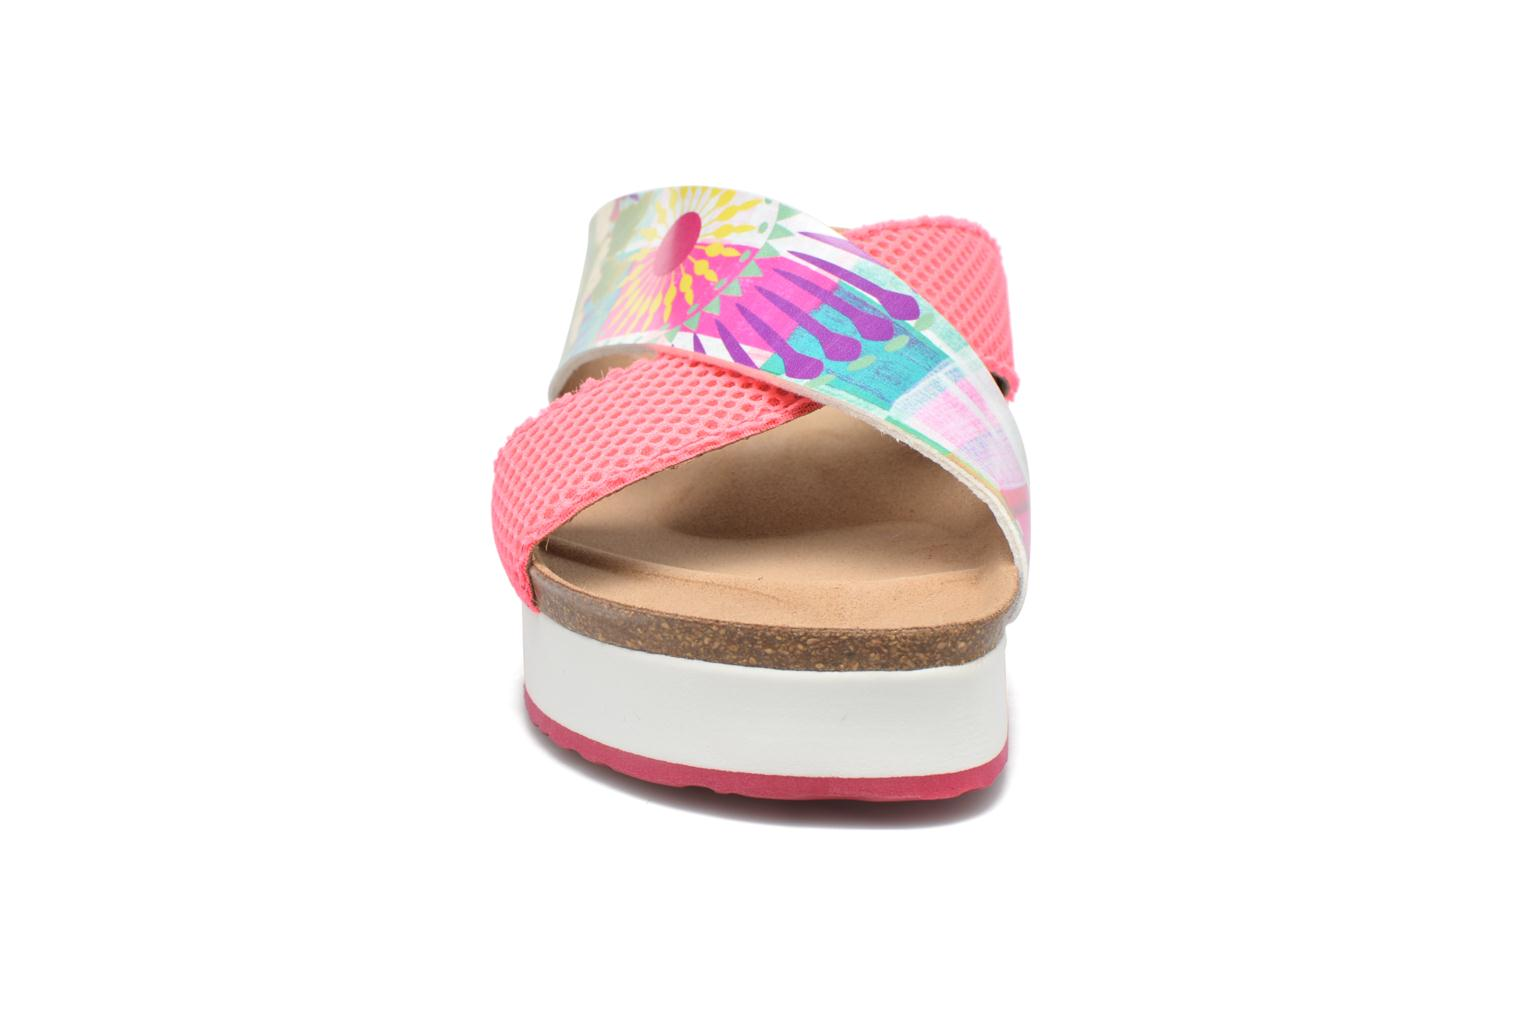 SHOES_BIO 10 MEGARA 2 3167 FANDANGO PINK